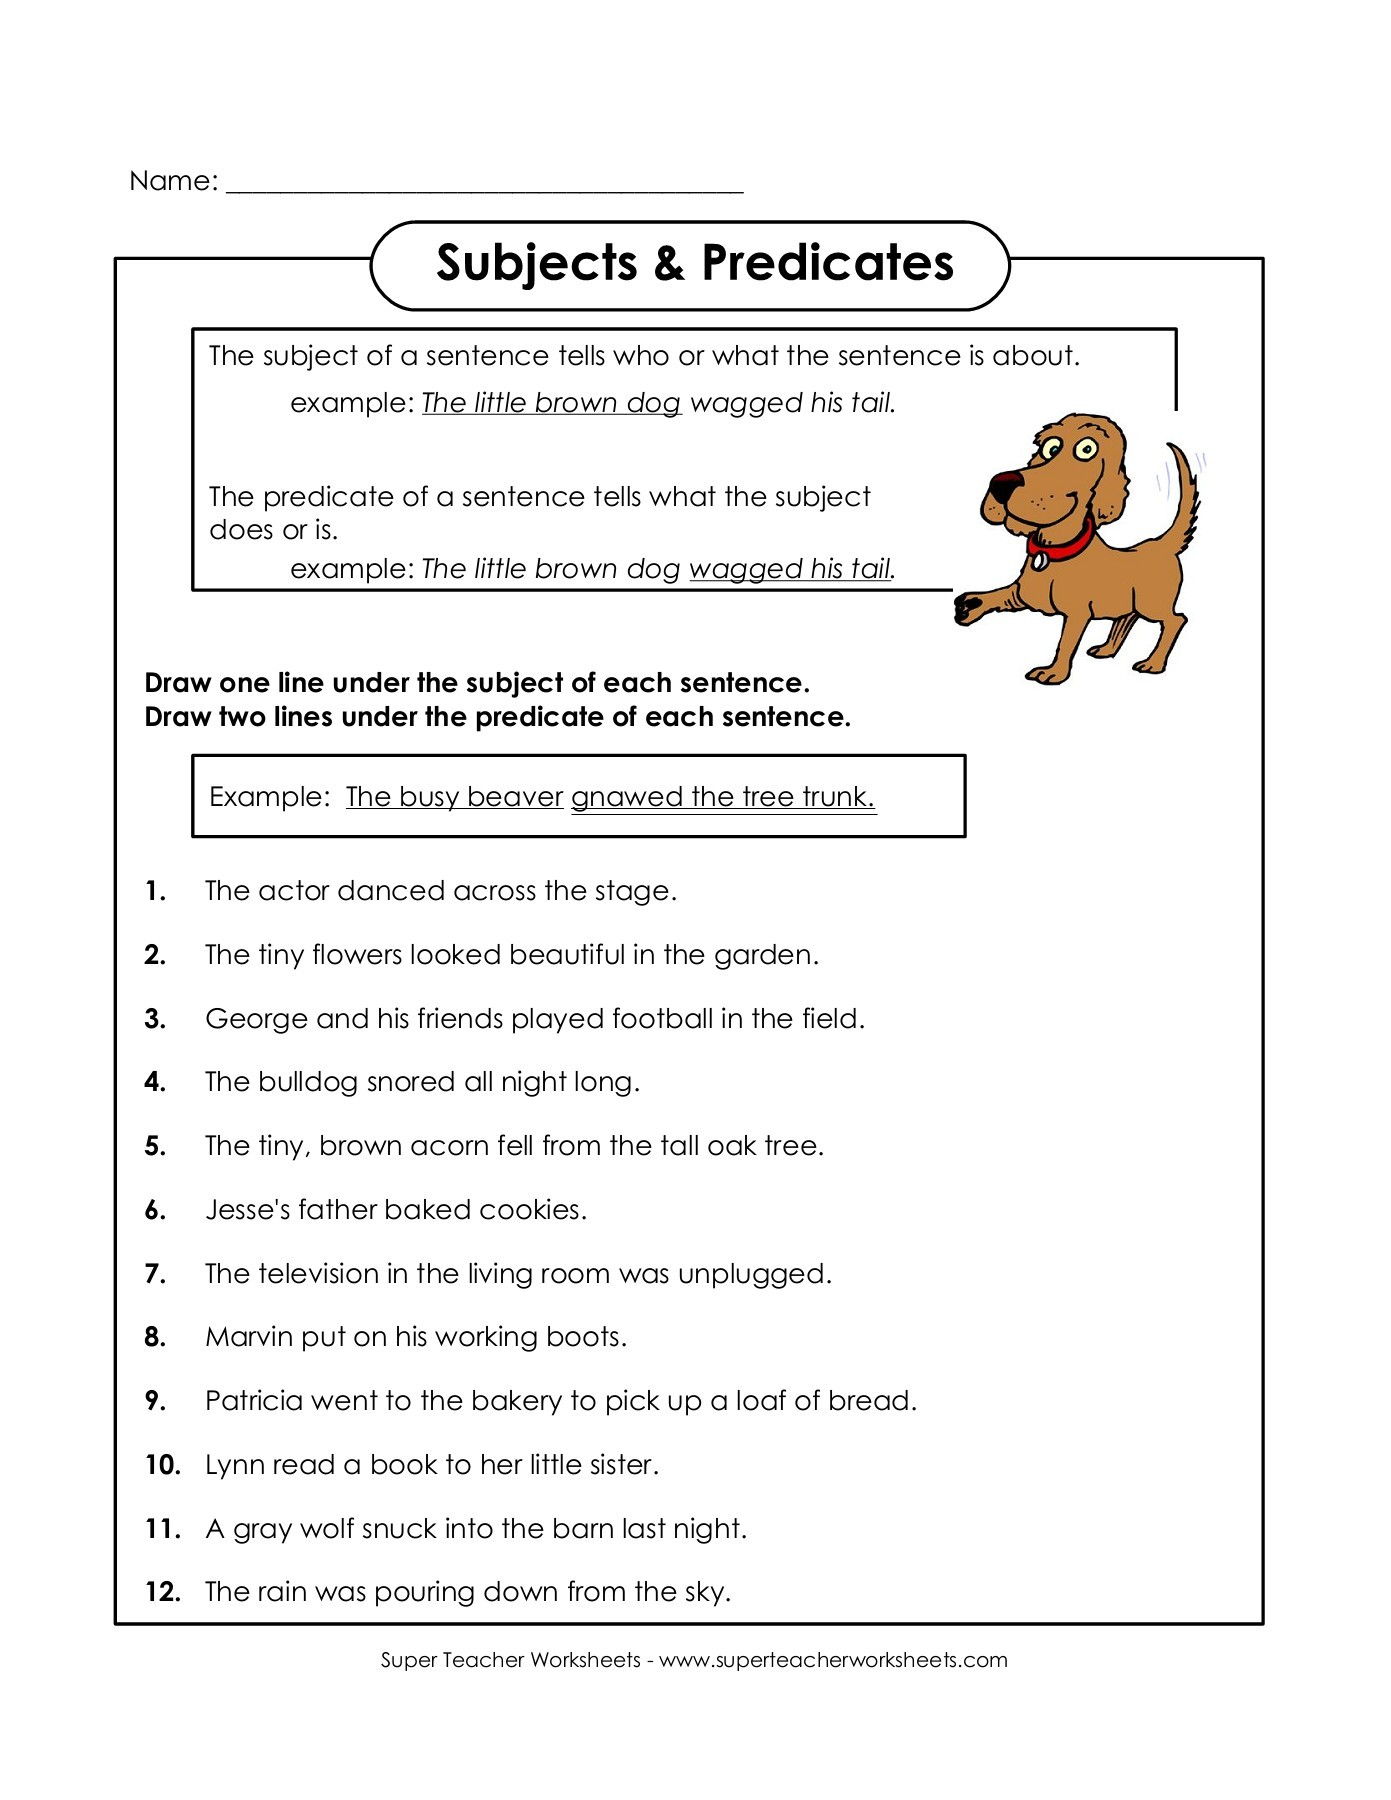 Printables Of Superteacherpages